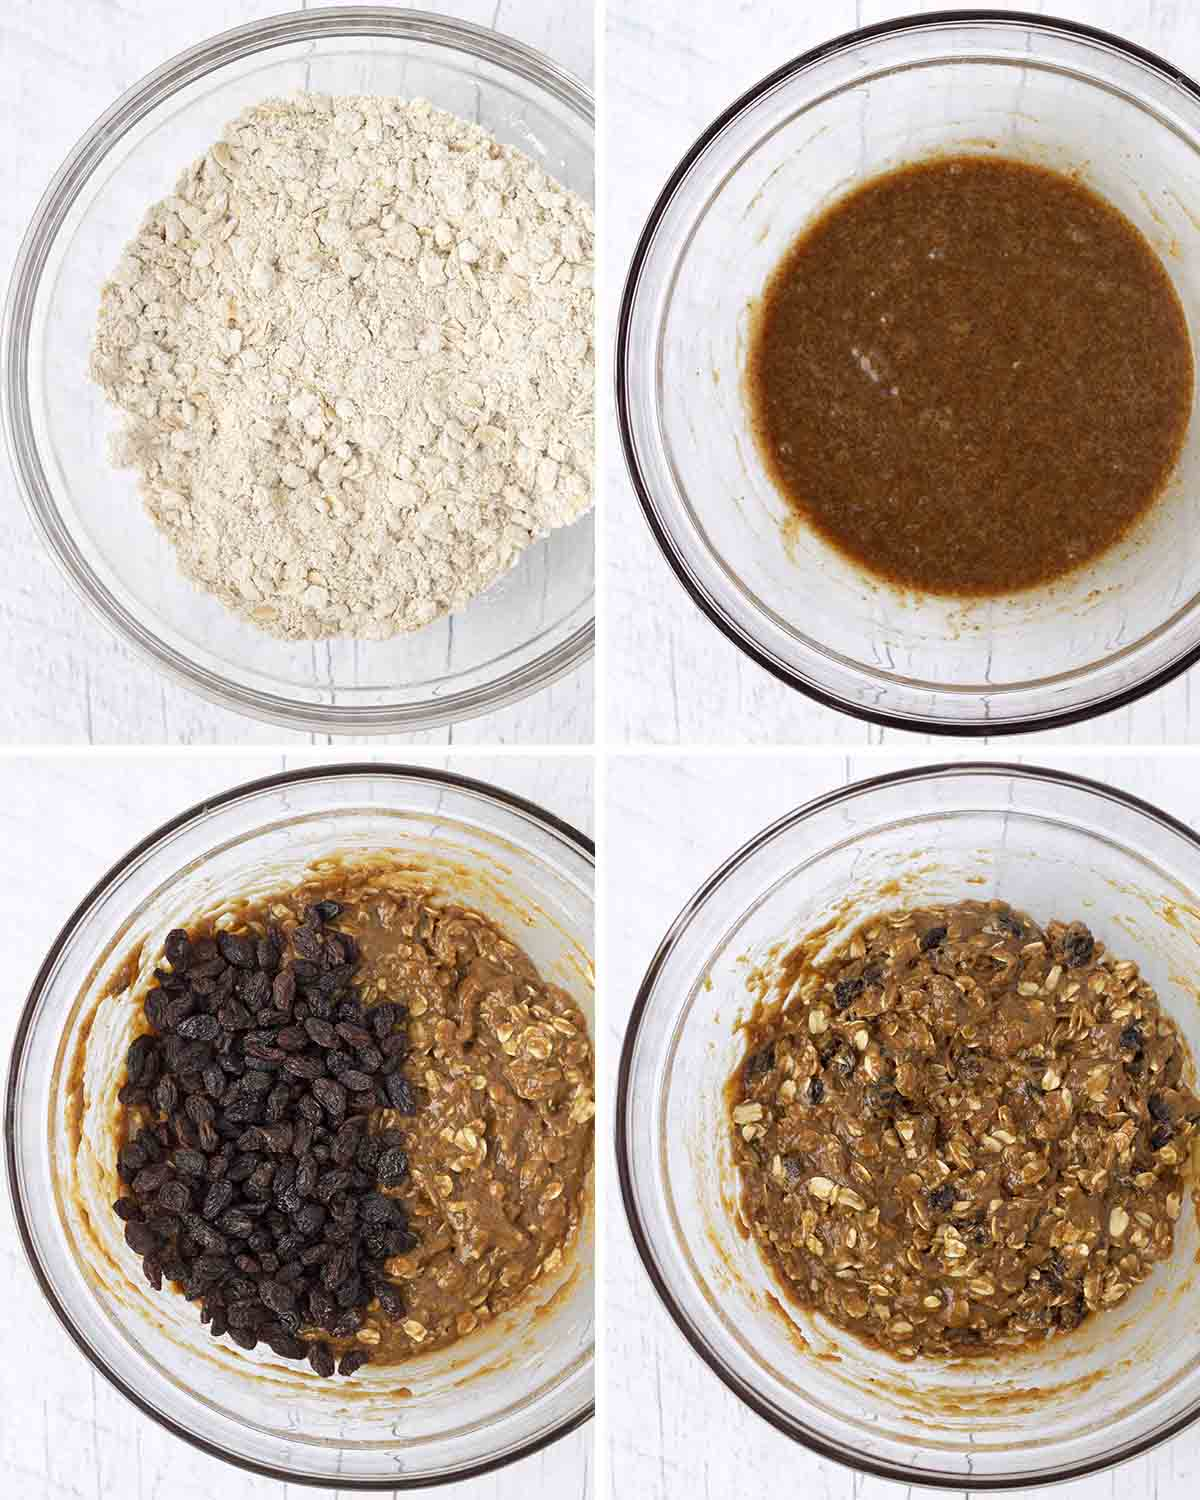 A collage of four images showing the sequence of steps needed to make egg-free oatmeal cookies with raisins.